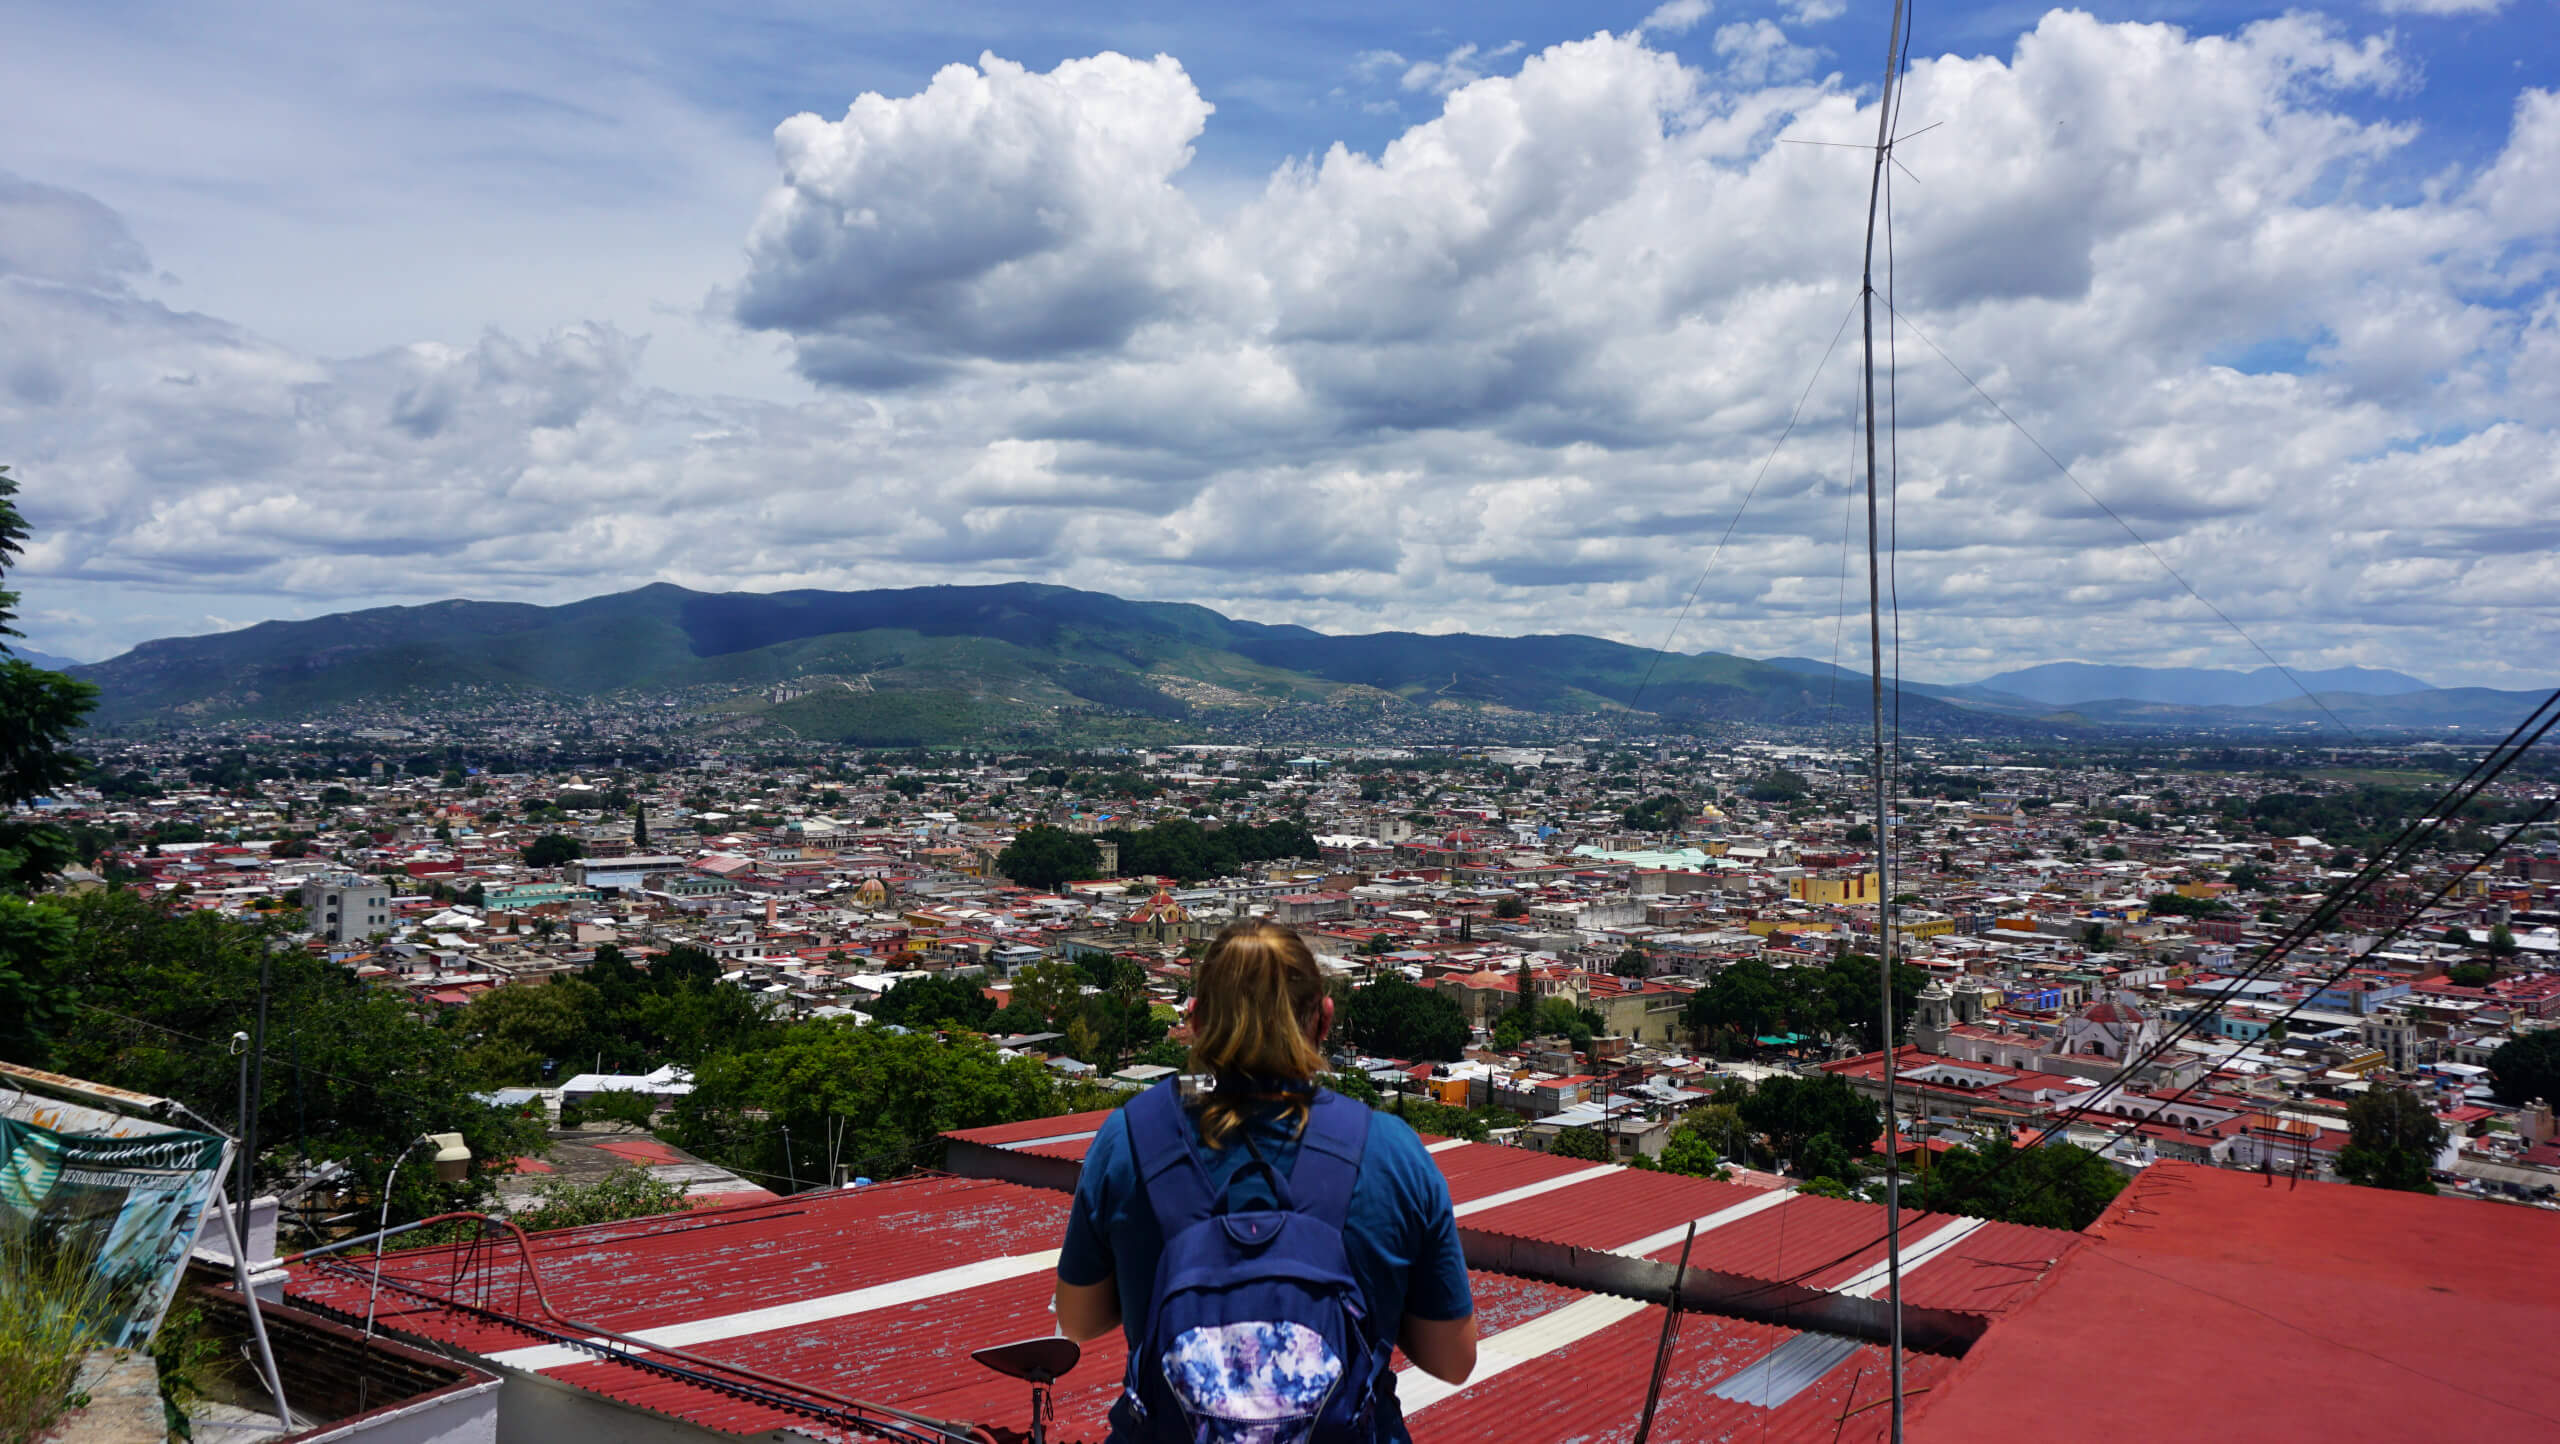 (Weeks 11 to 14) State of Oaxaca